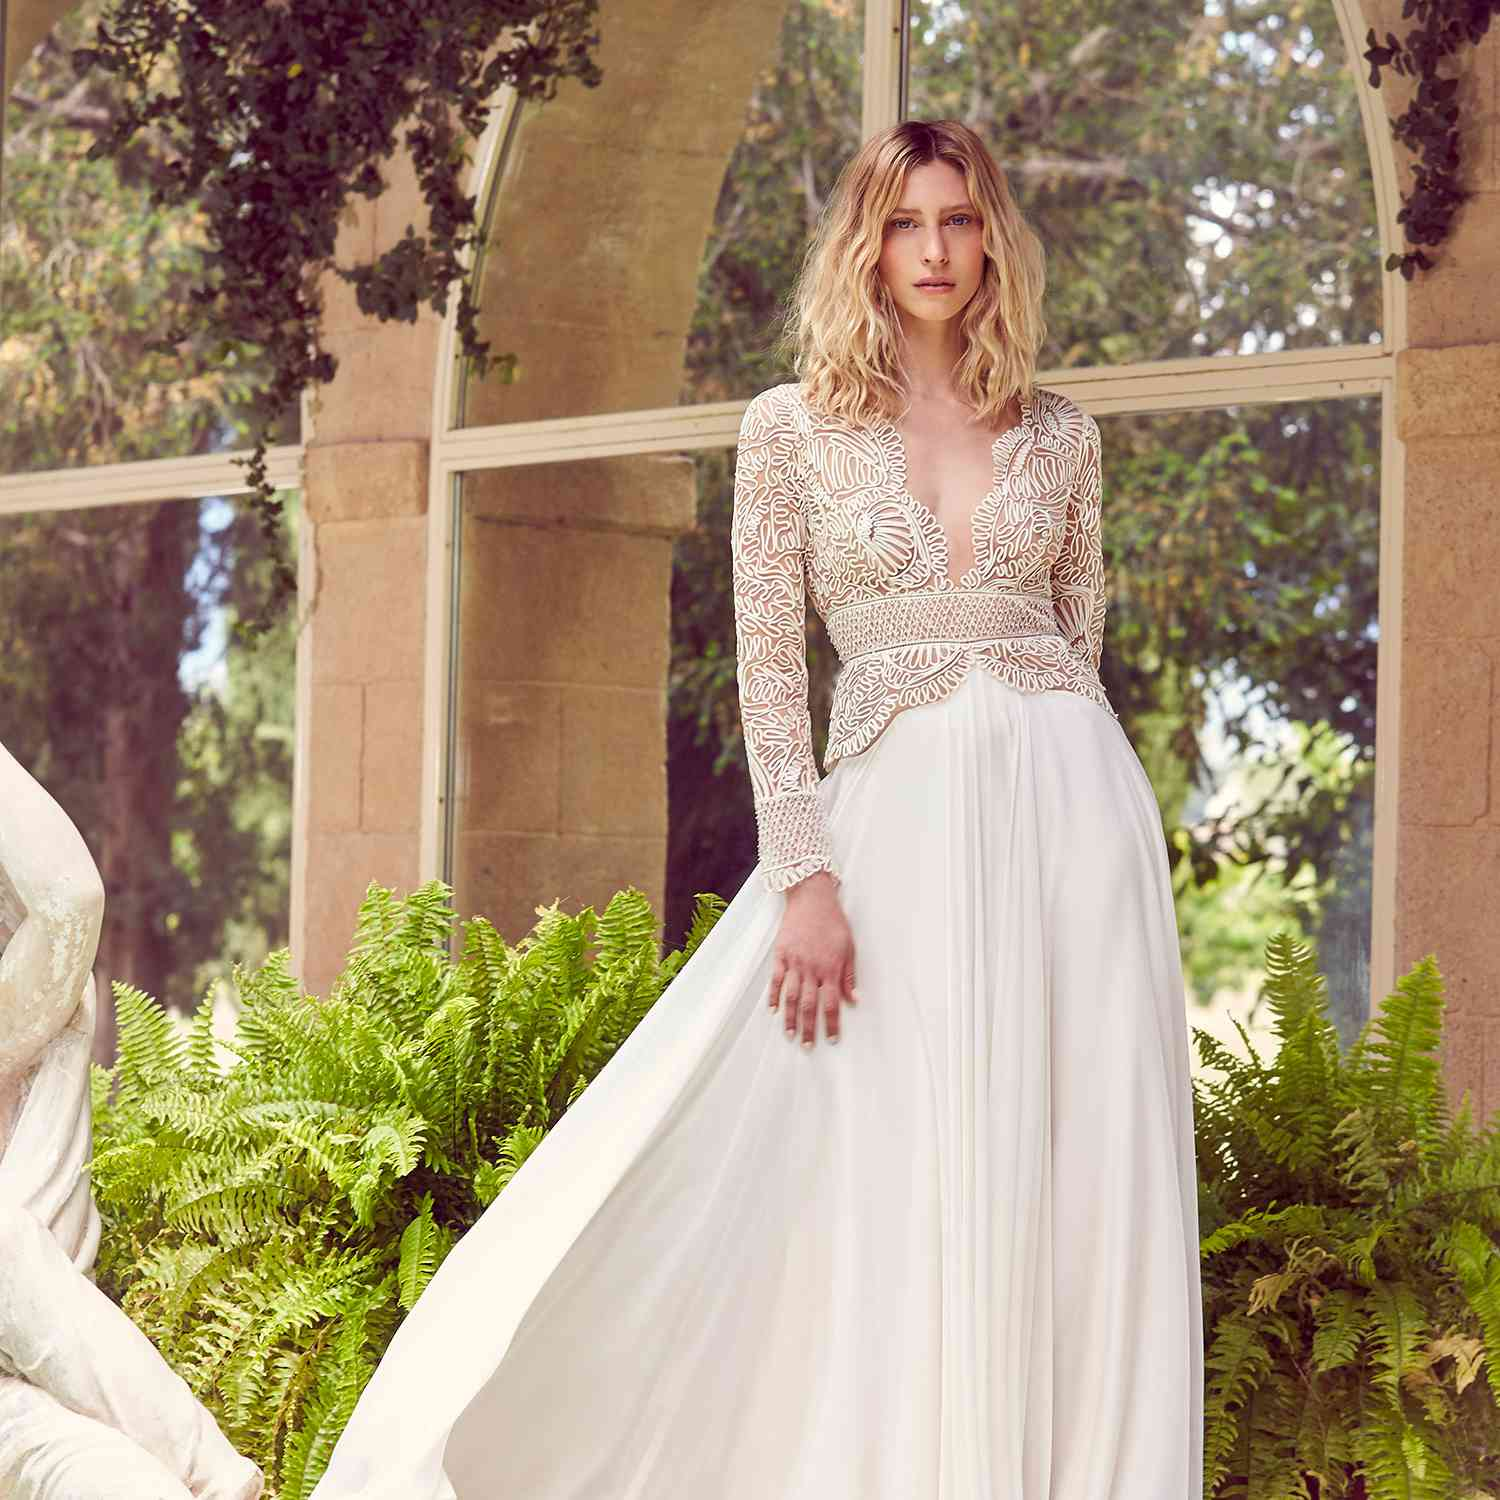 Model in wedding gown with embroidered illusion bodice and neckline